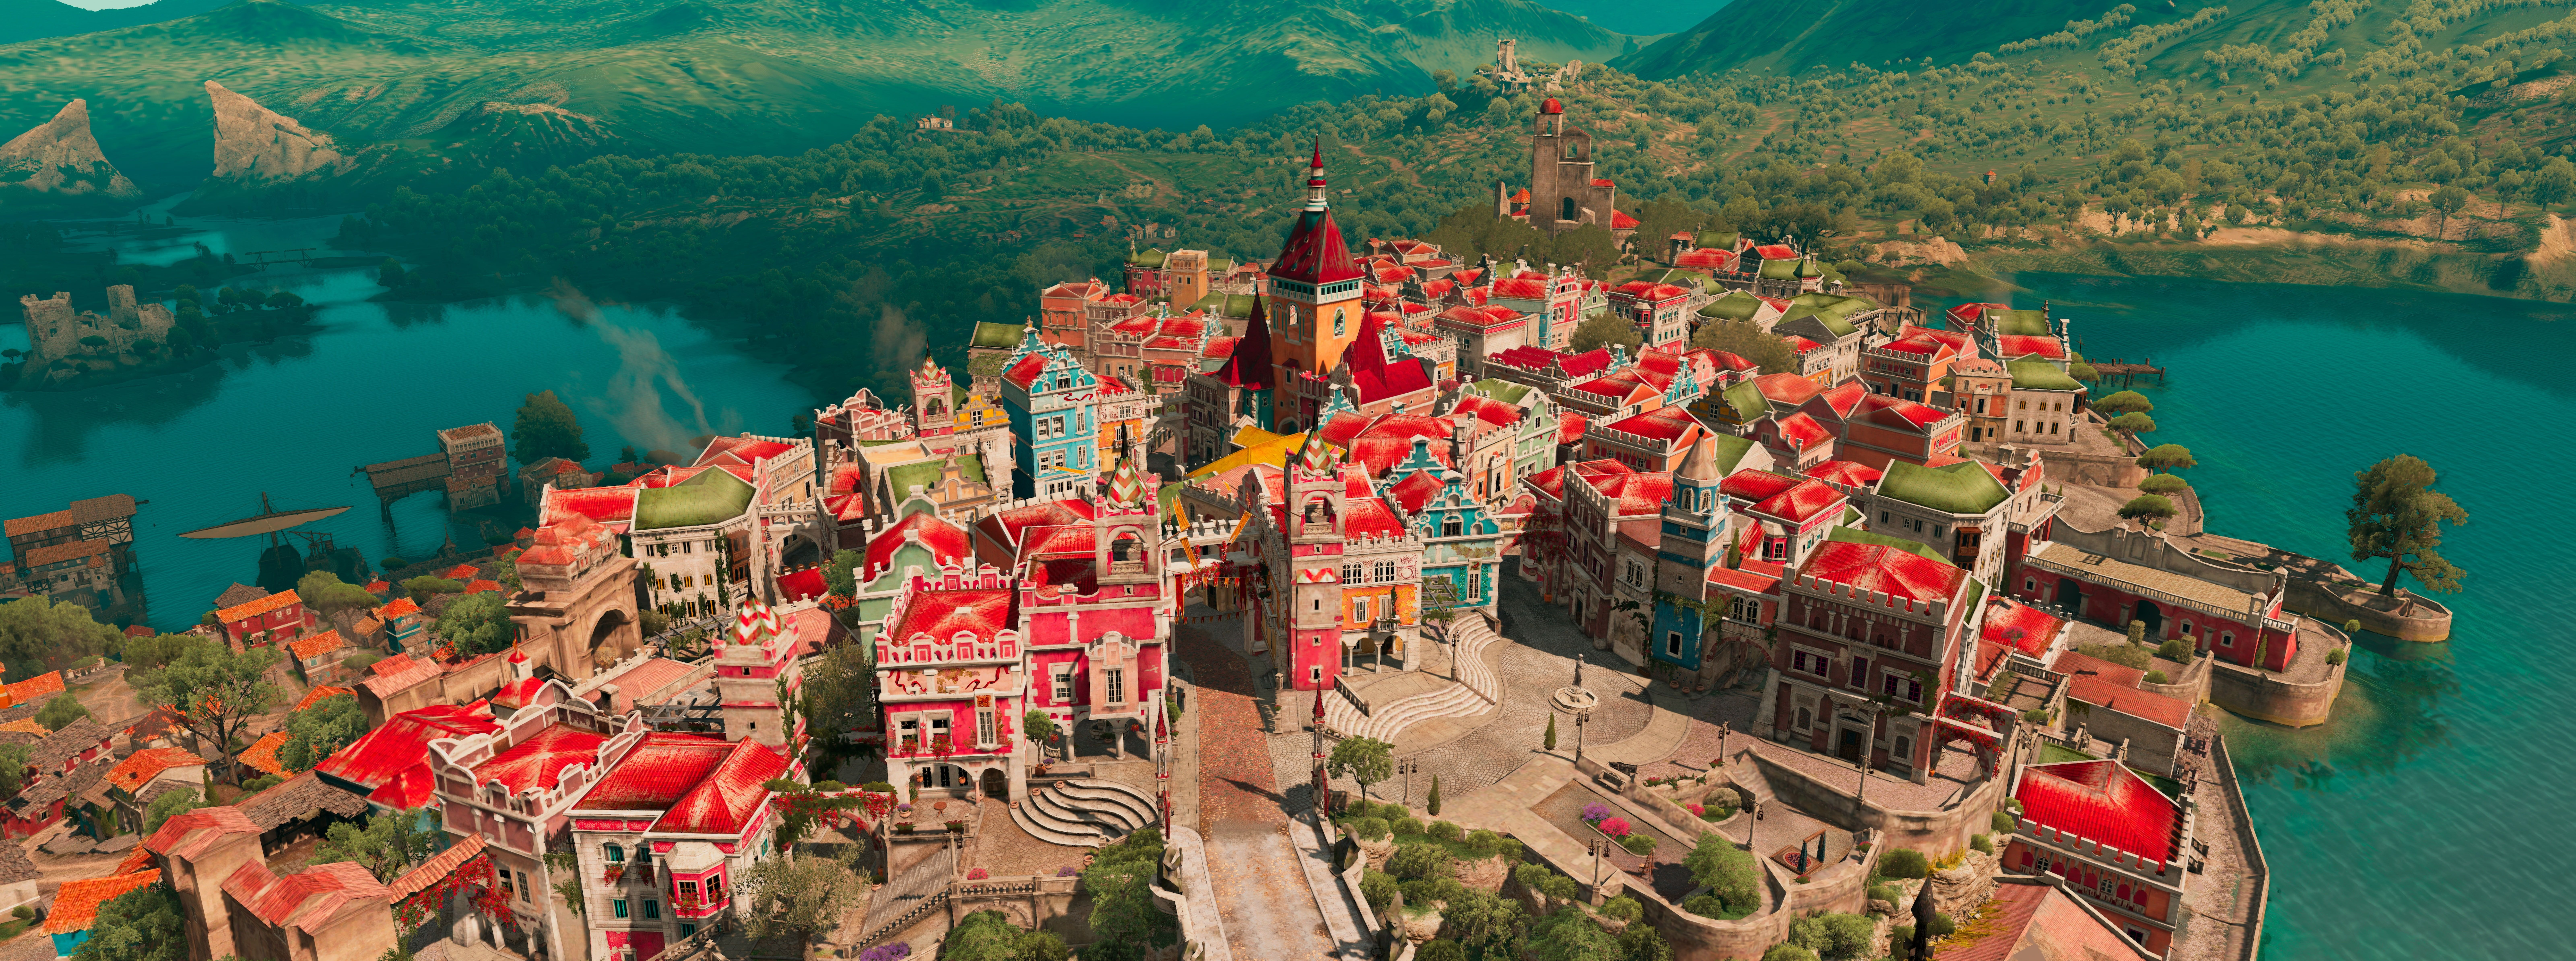 Beauclair The Capital City Of The Duchy Of Red And Beige Structures Games The Witcher 16k The Witcher The Witcher Fantasy Places Wallpaper Capital City